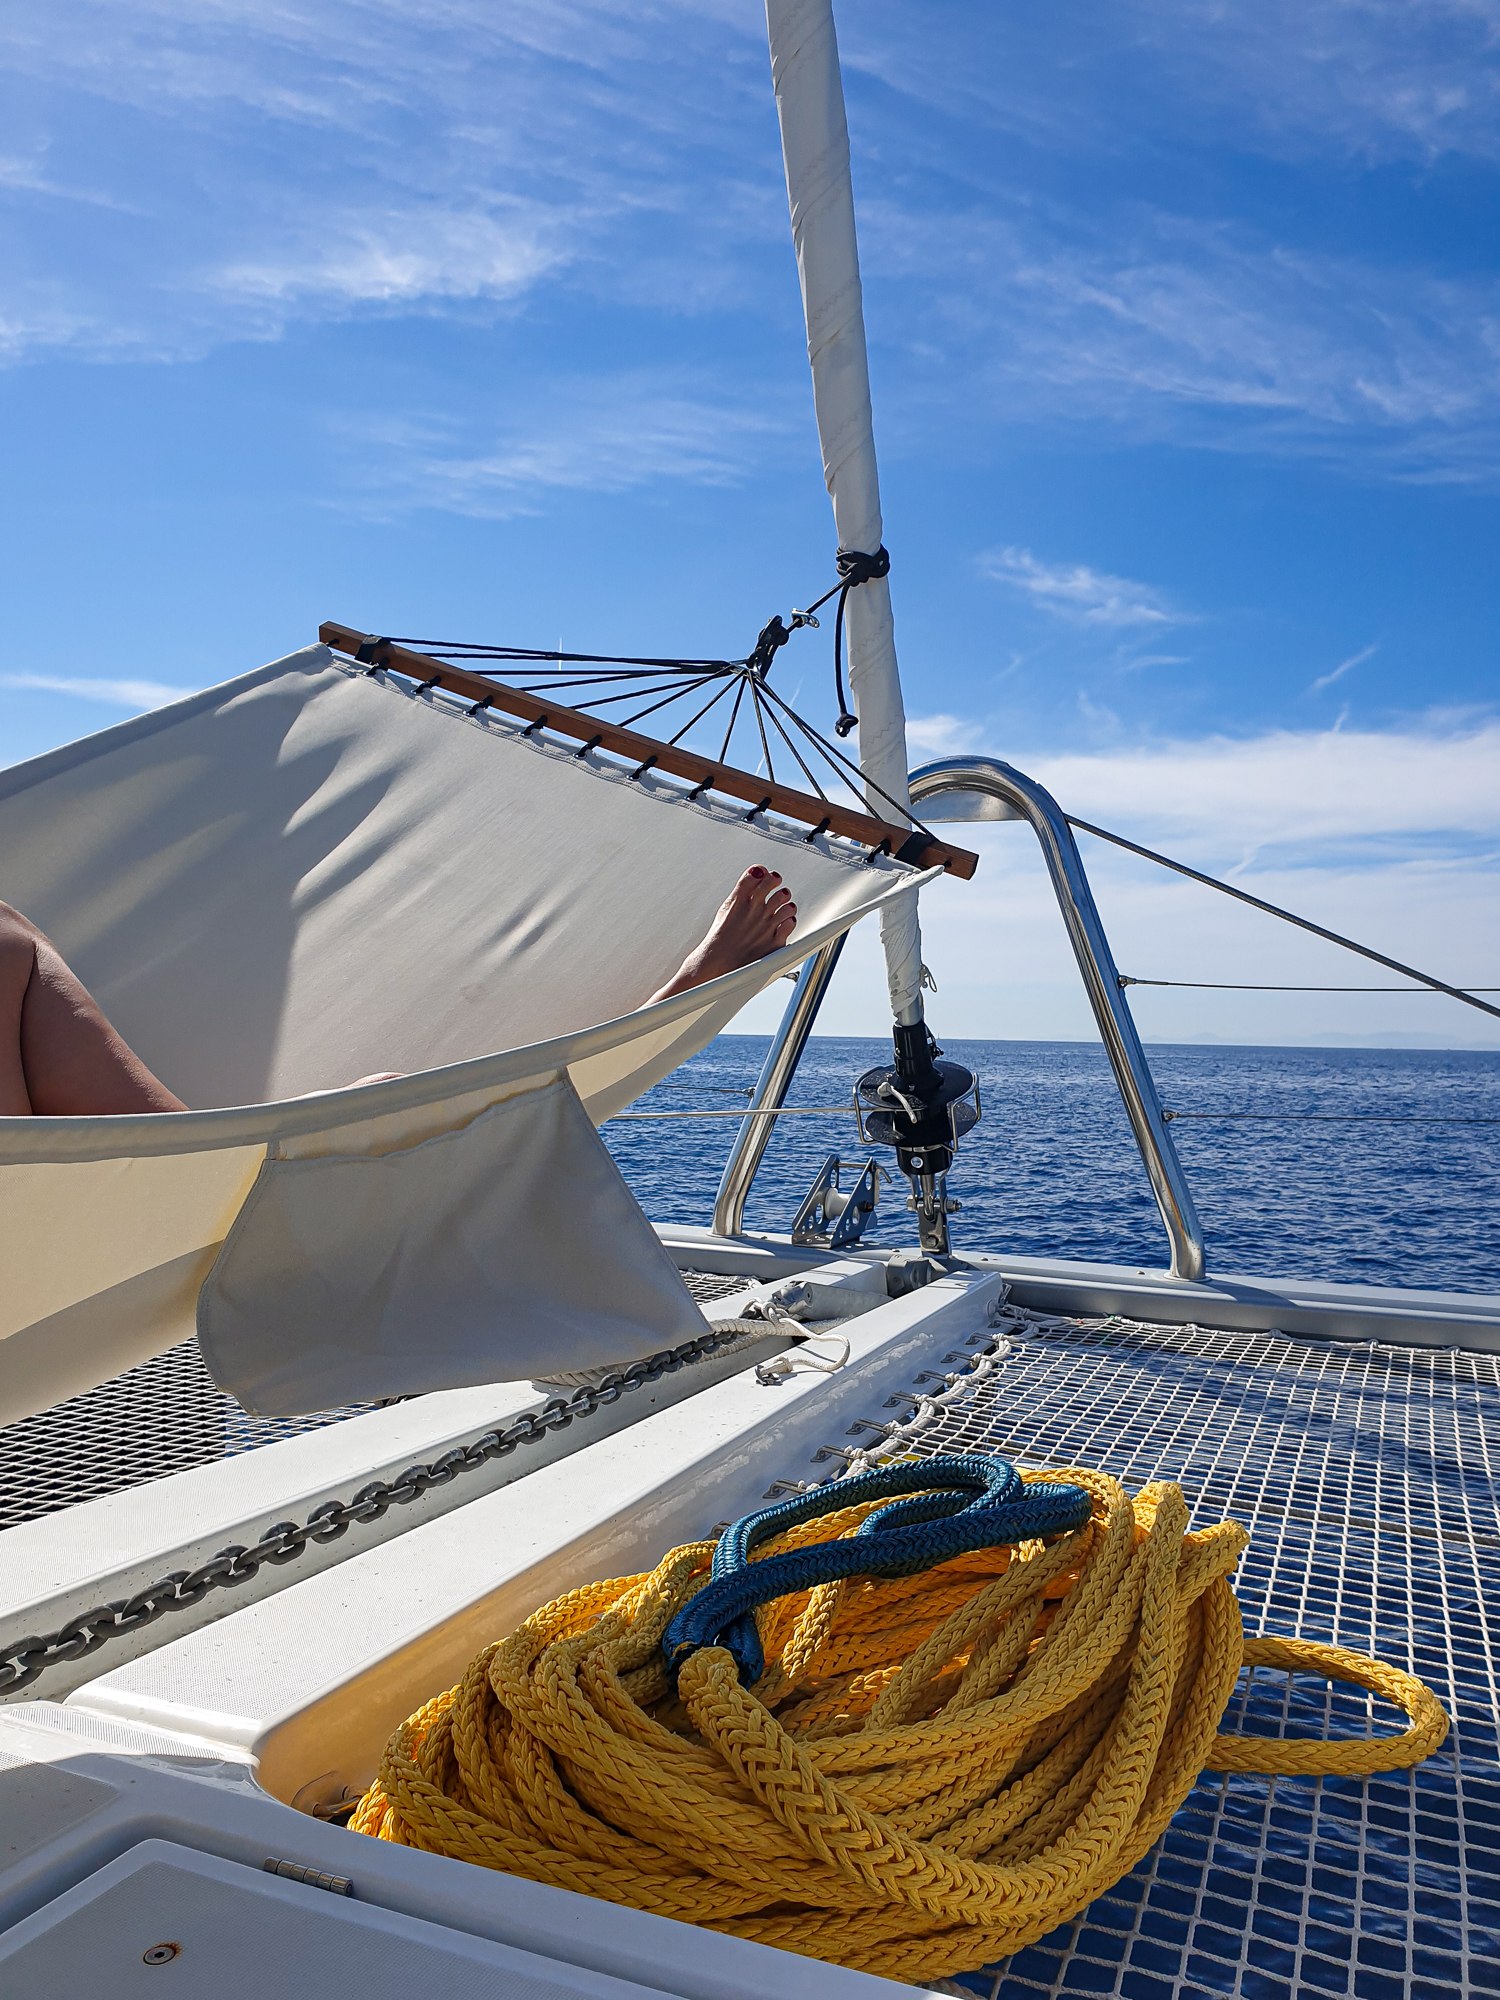 A light wind day on Nomad… relaxing while underway to the Island of Tzia.